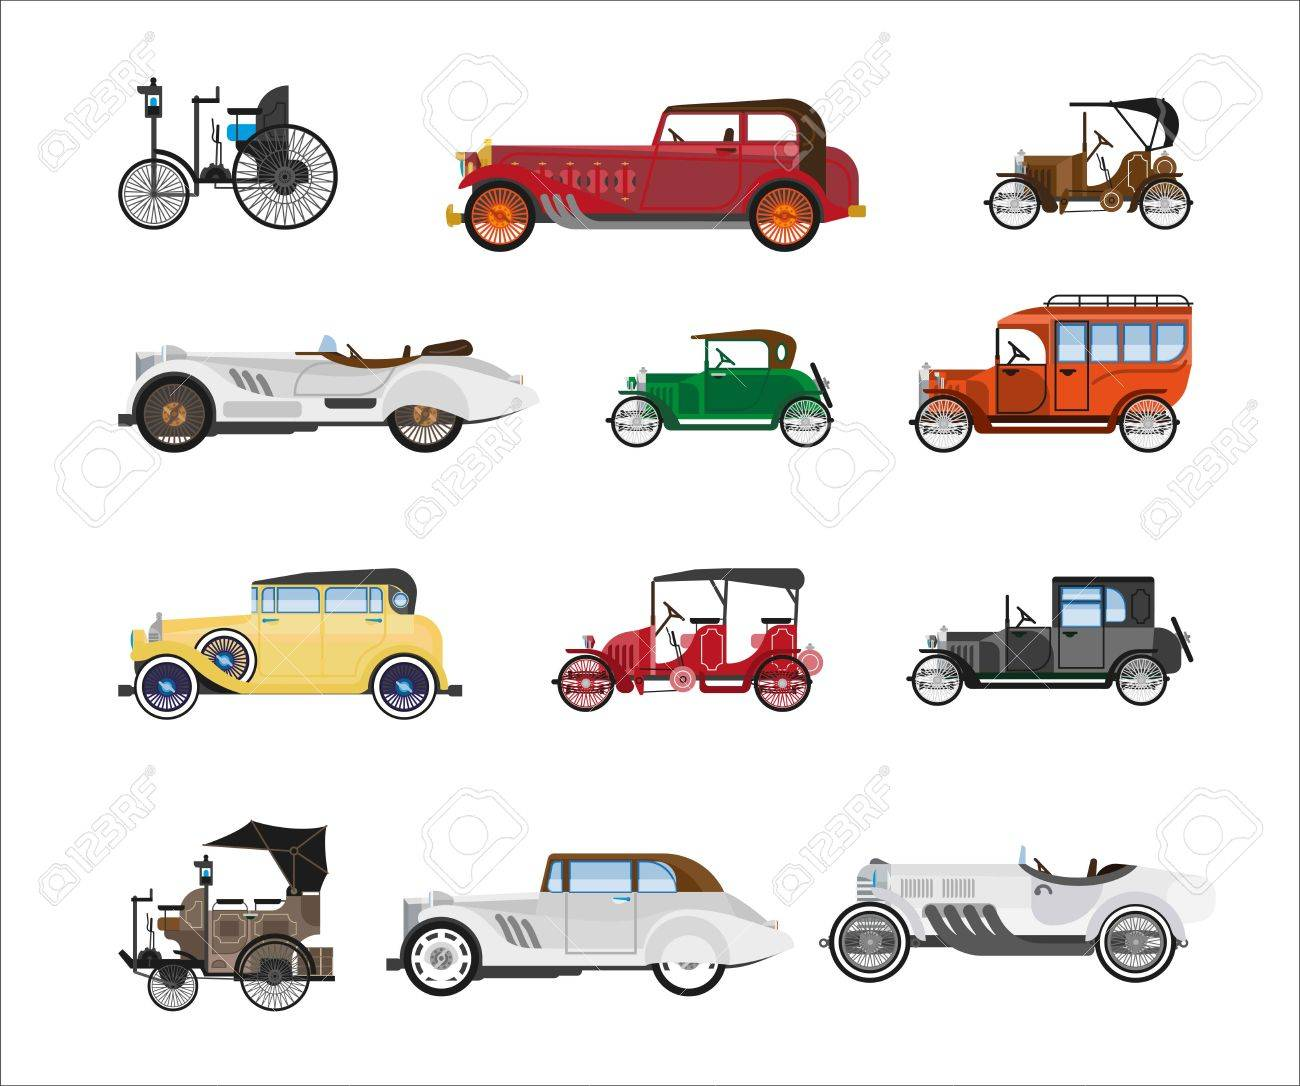 Antique Vehicle Colorful Vector Poster In Flat Design On White ...